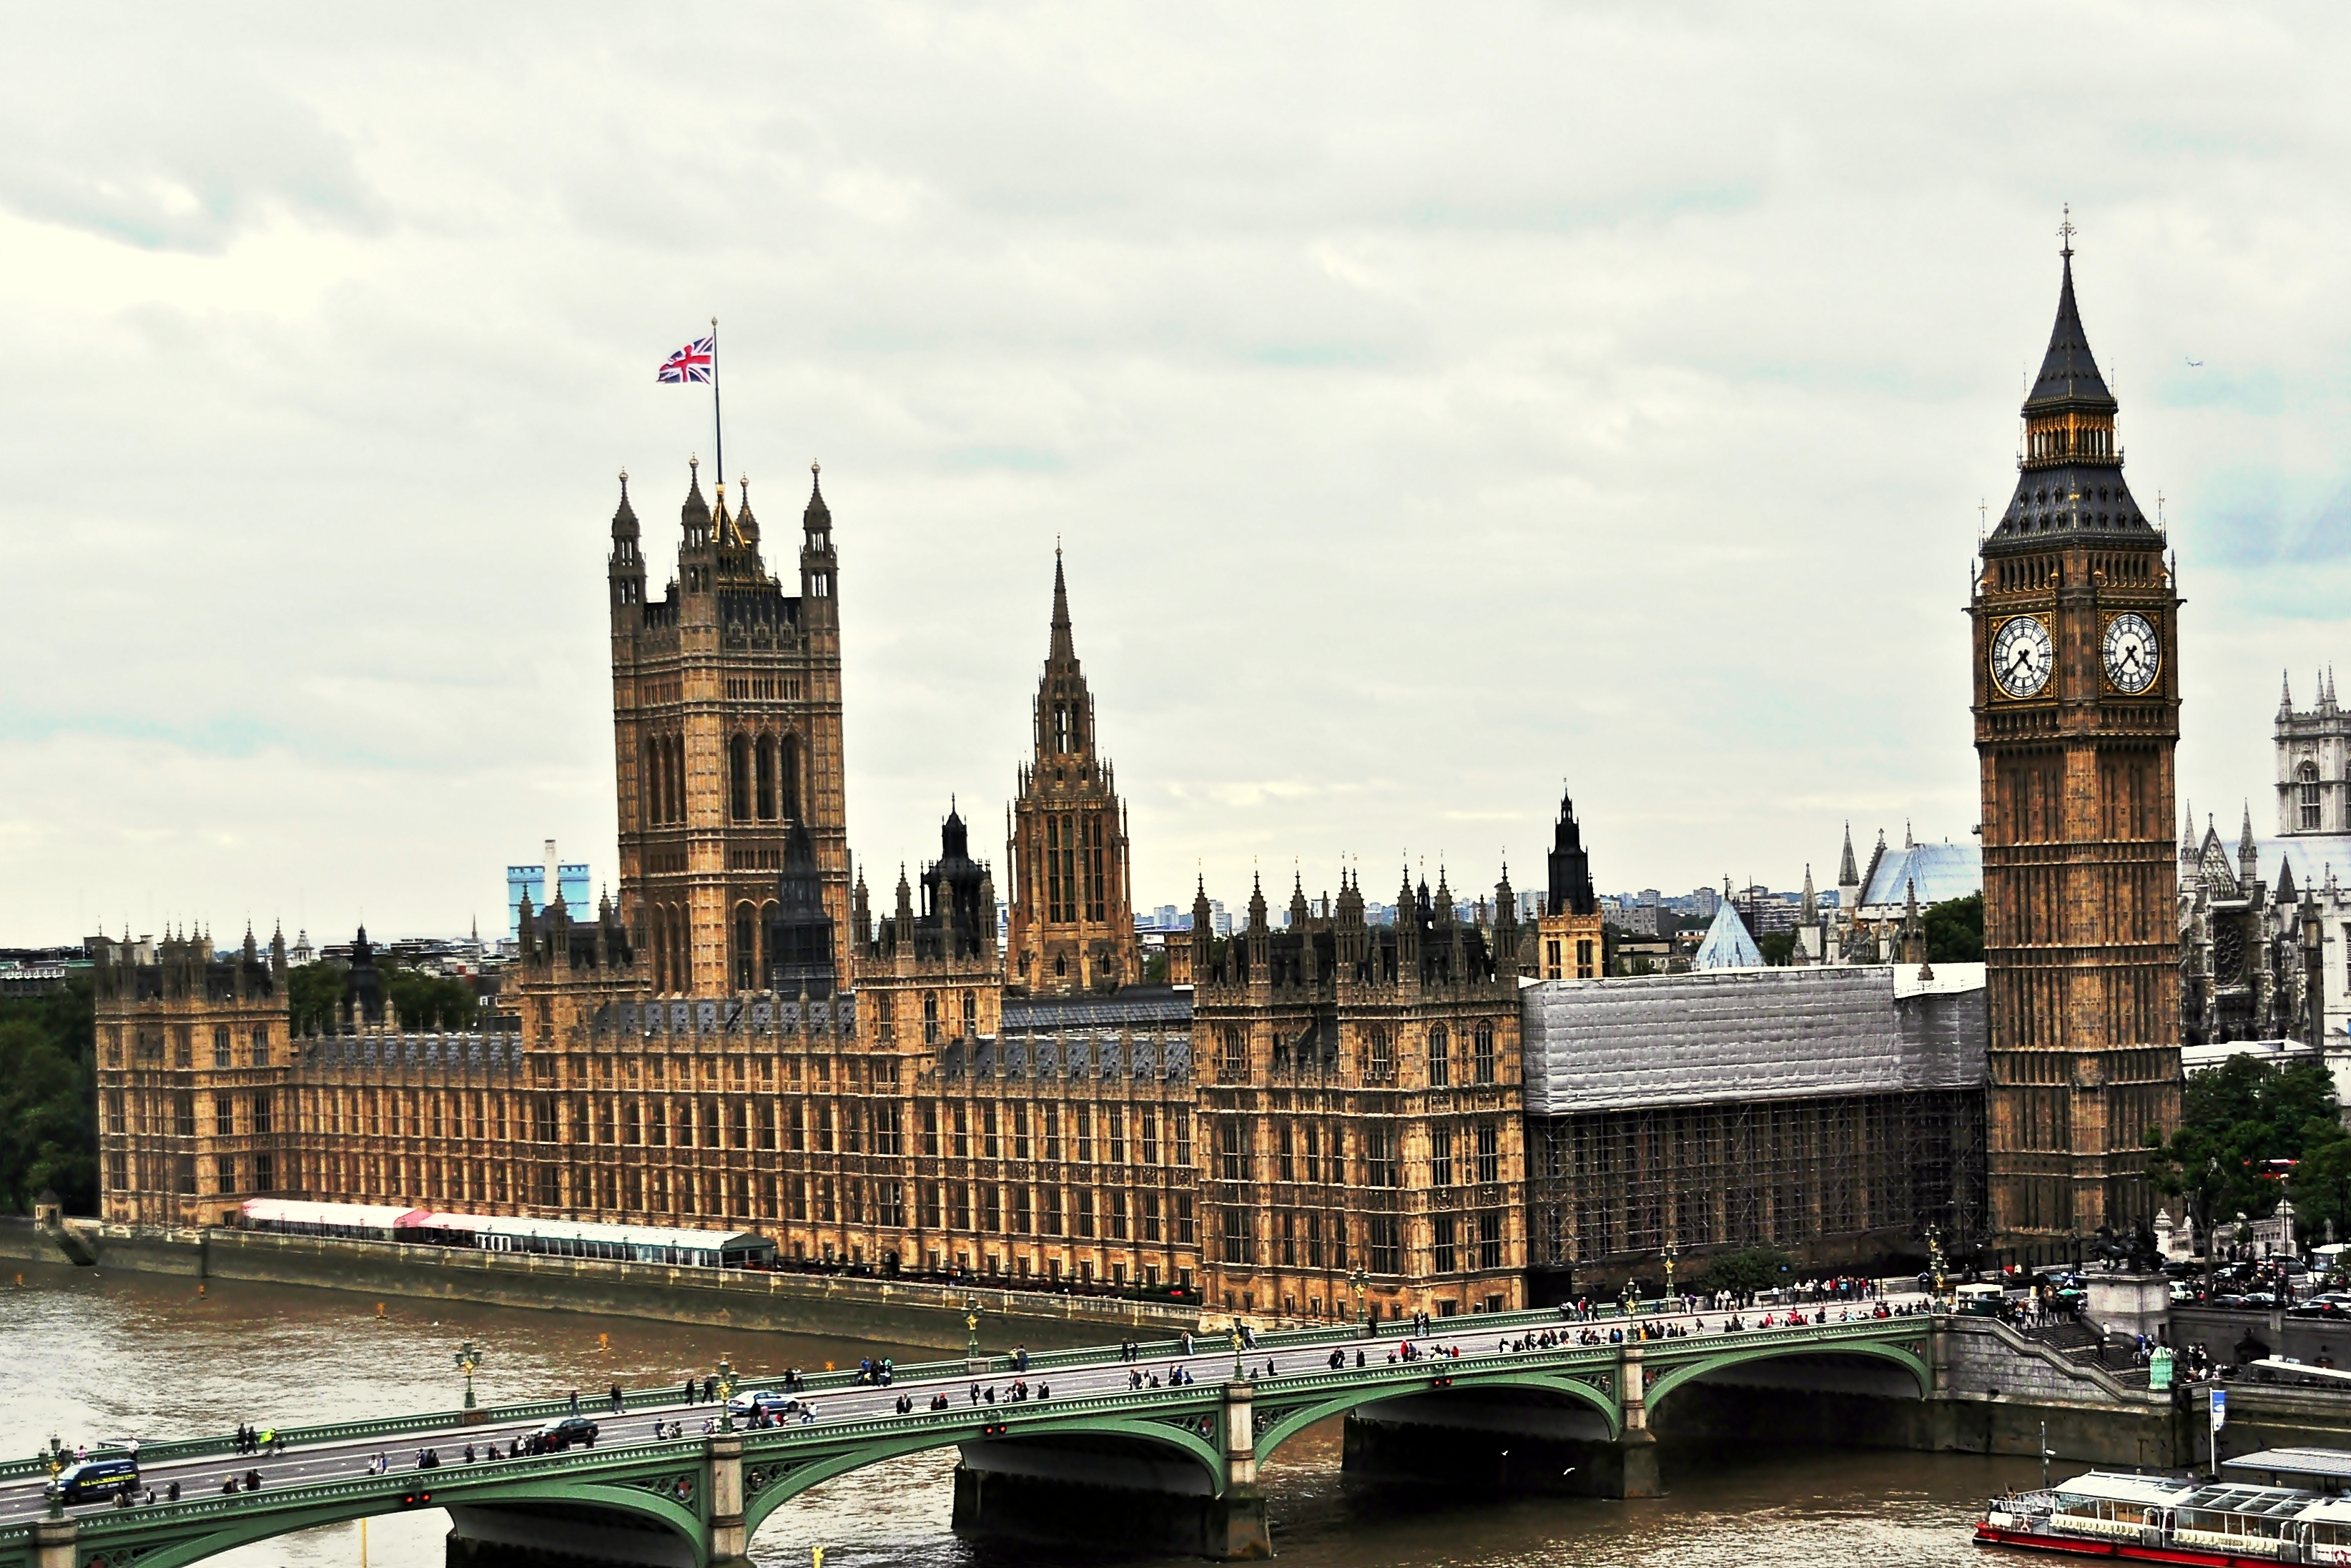 A photo of the Palace of Westminster